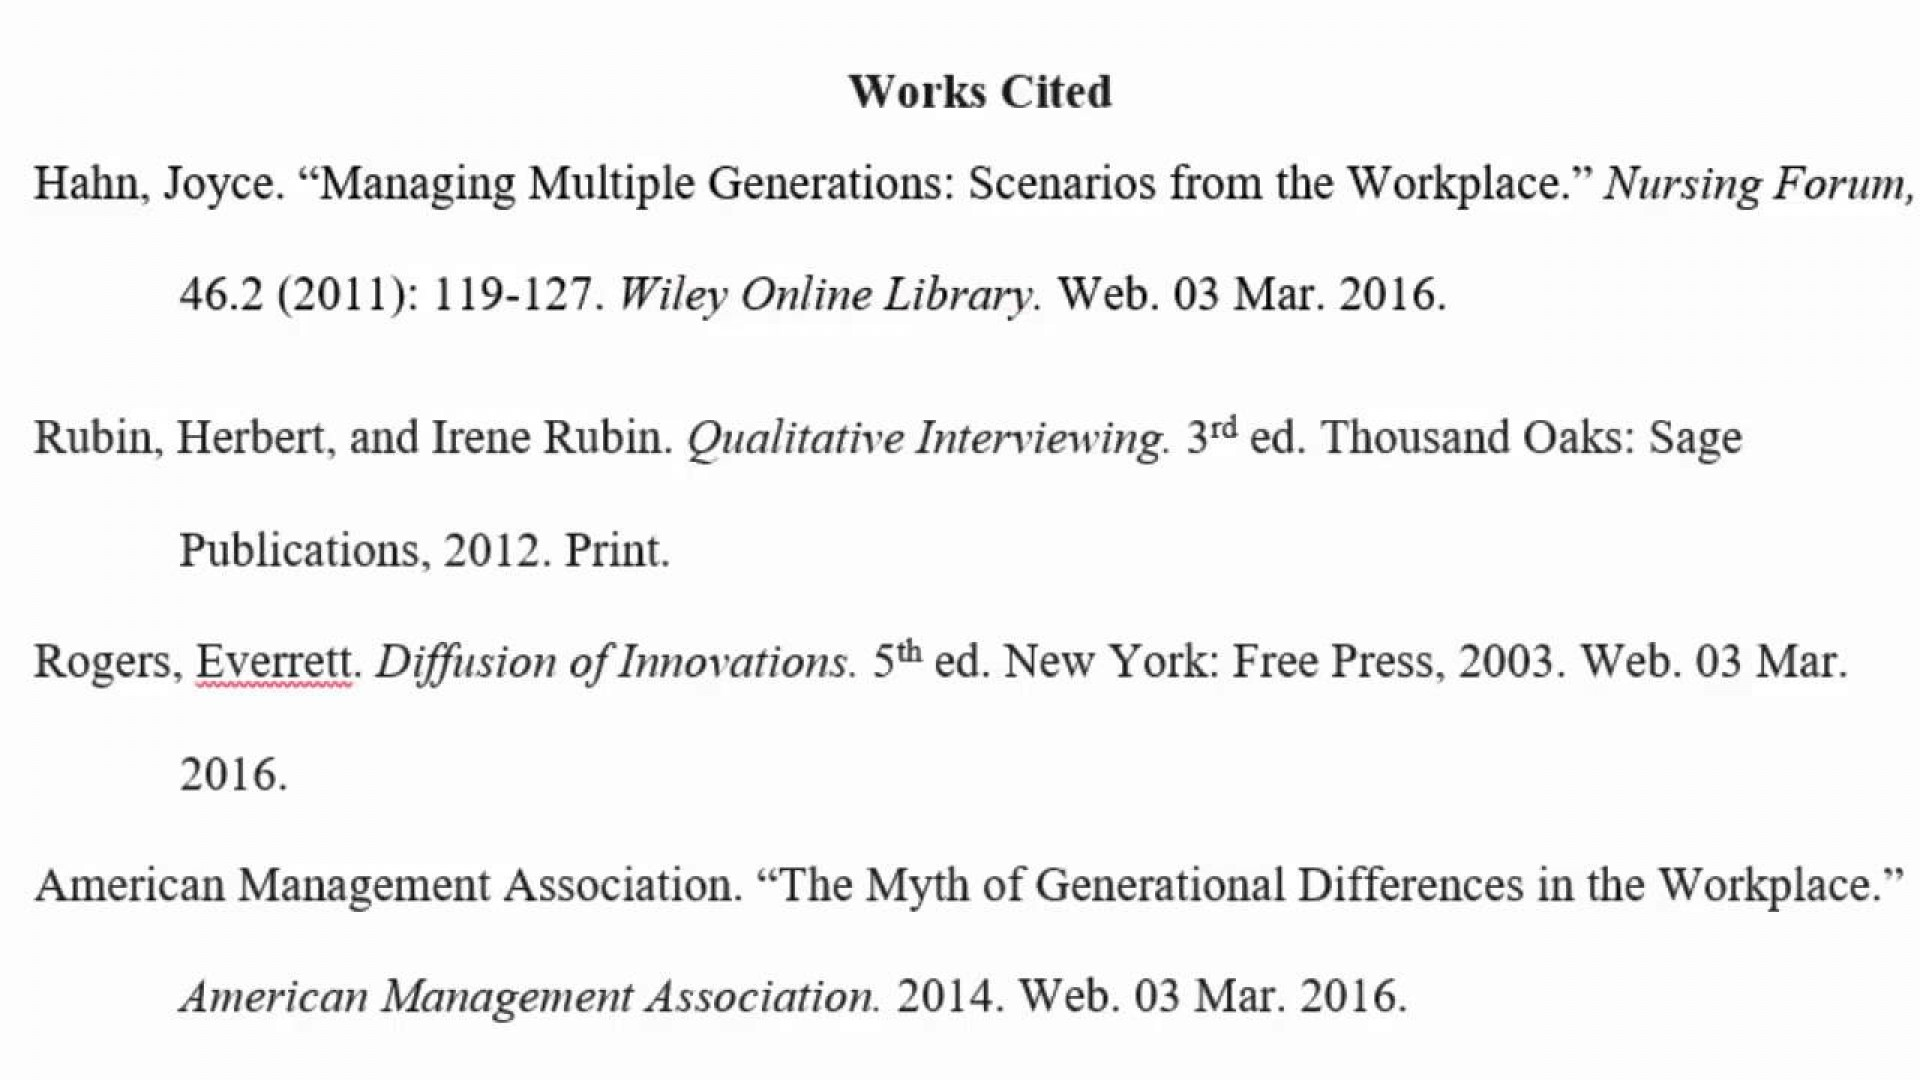 019 Essay Example Maxresdefault How To Cite Work In Stupendous An Nber Working Paper Mla A Web Source 1920